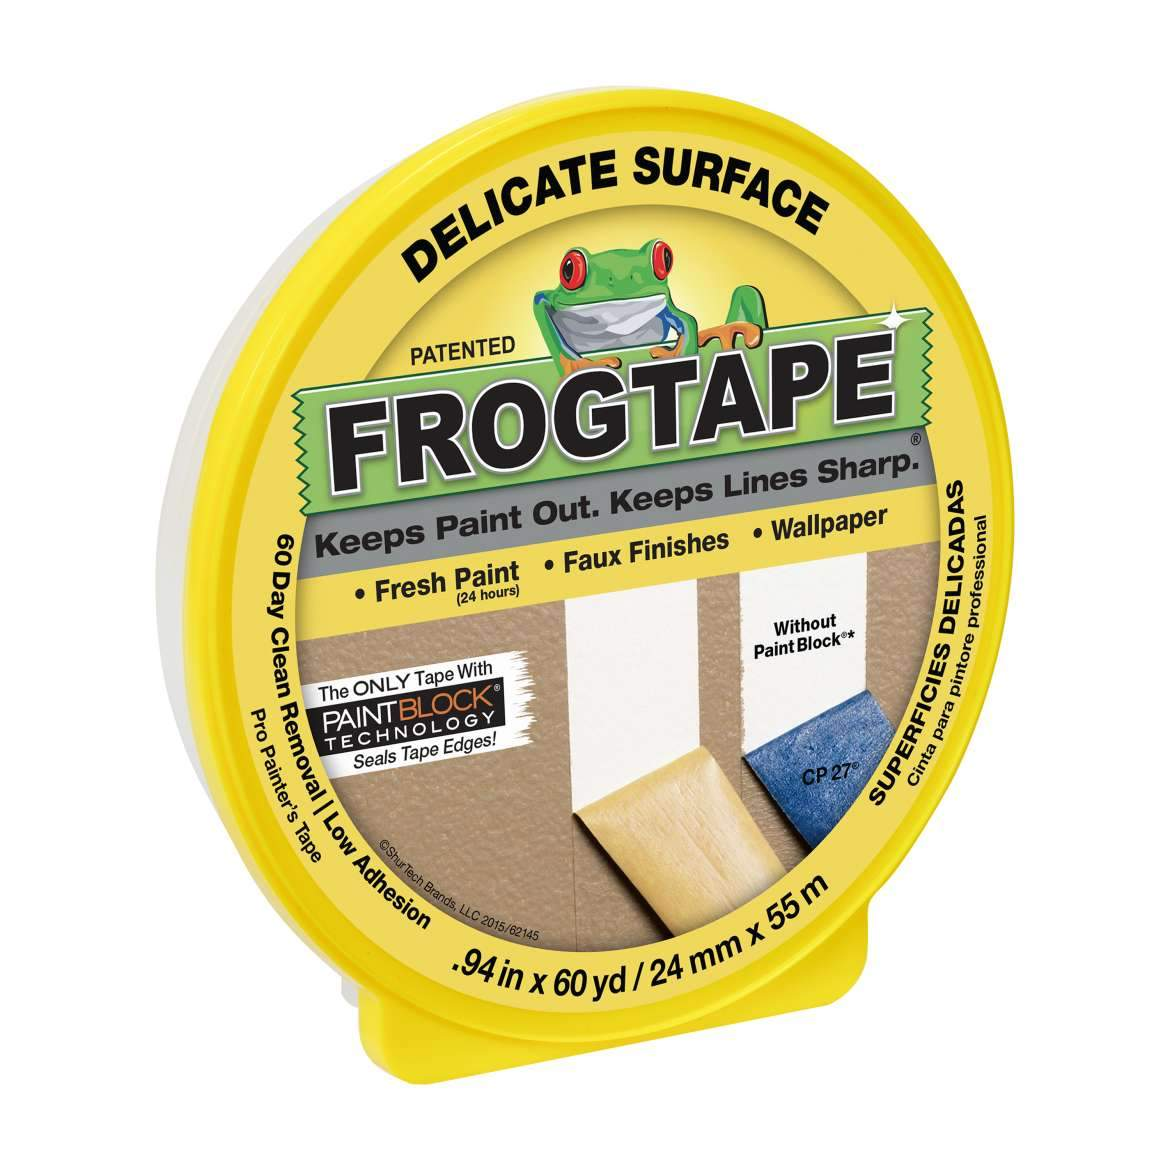 Frog Tape - Delicate Surface Painter's Tape - Tynt Paint Studio